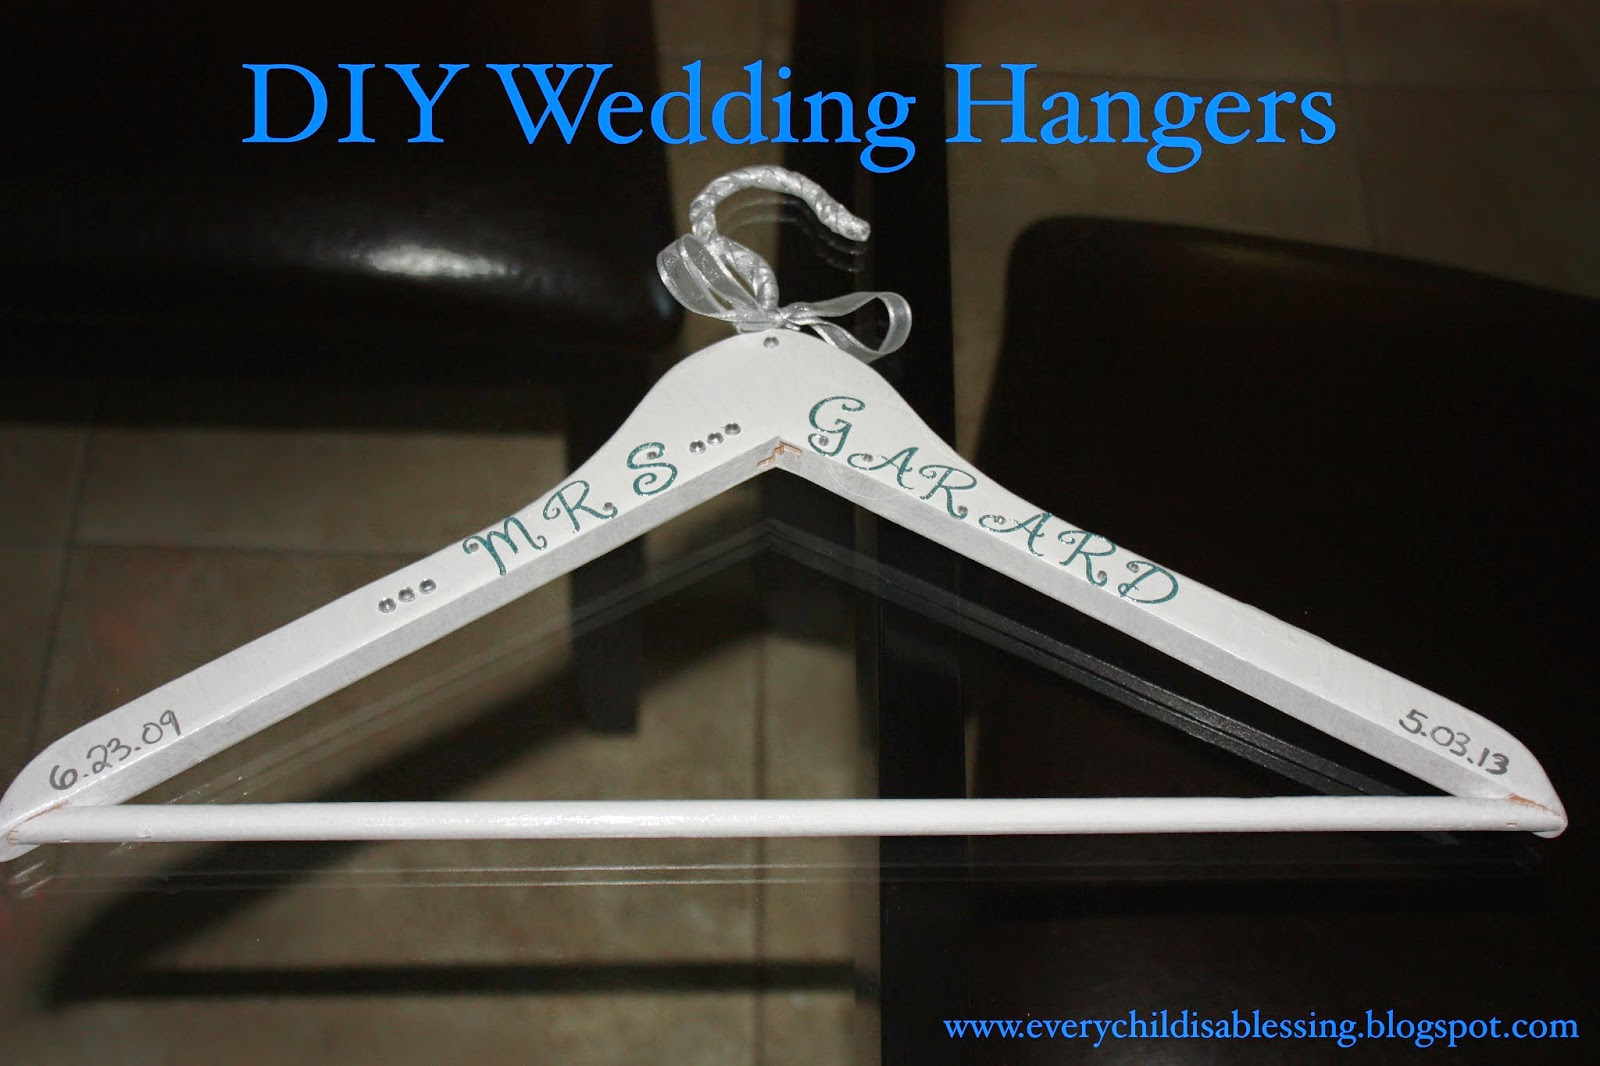 Diy Bachelorette Hangers Are A Great Way To Add Some Personalization Your Wedding Photographs They Look Wonderful With The Dresses